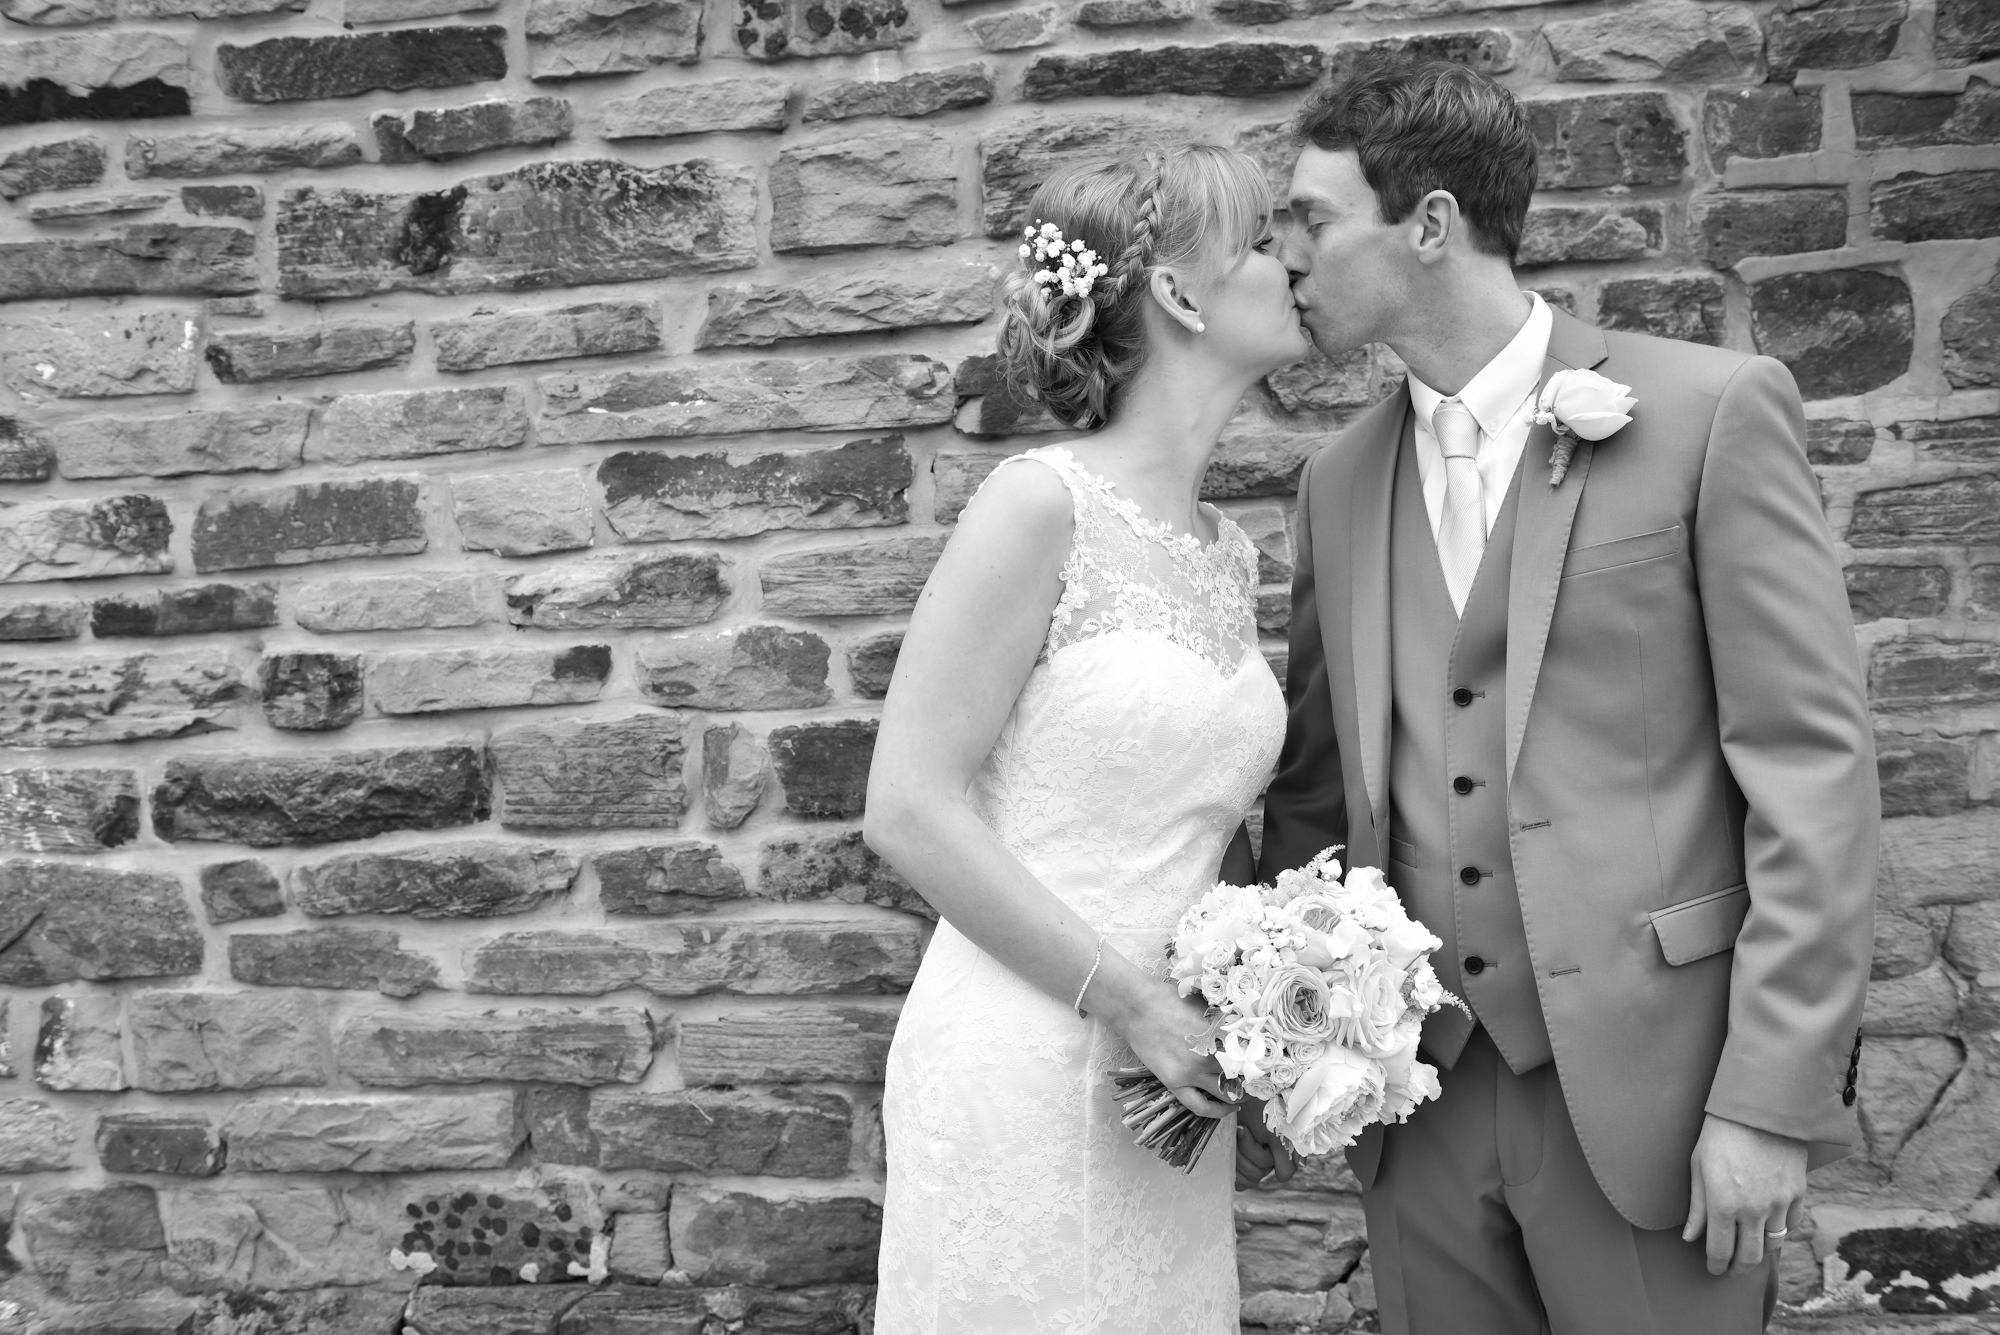 Wedding kiss by a brick wall